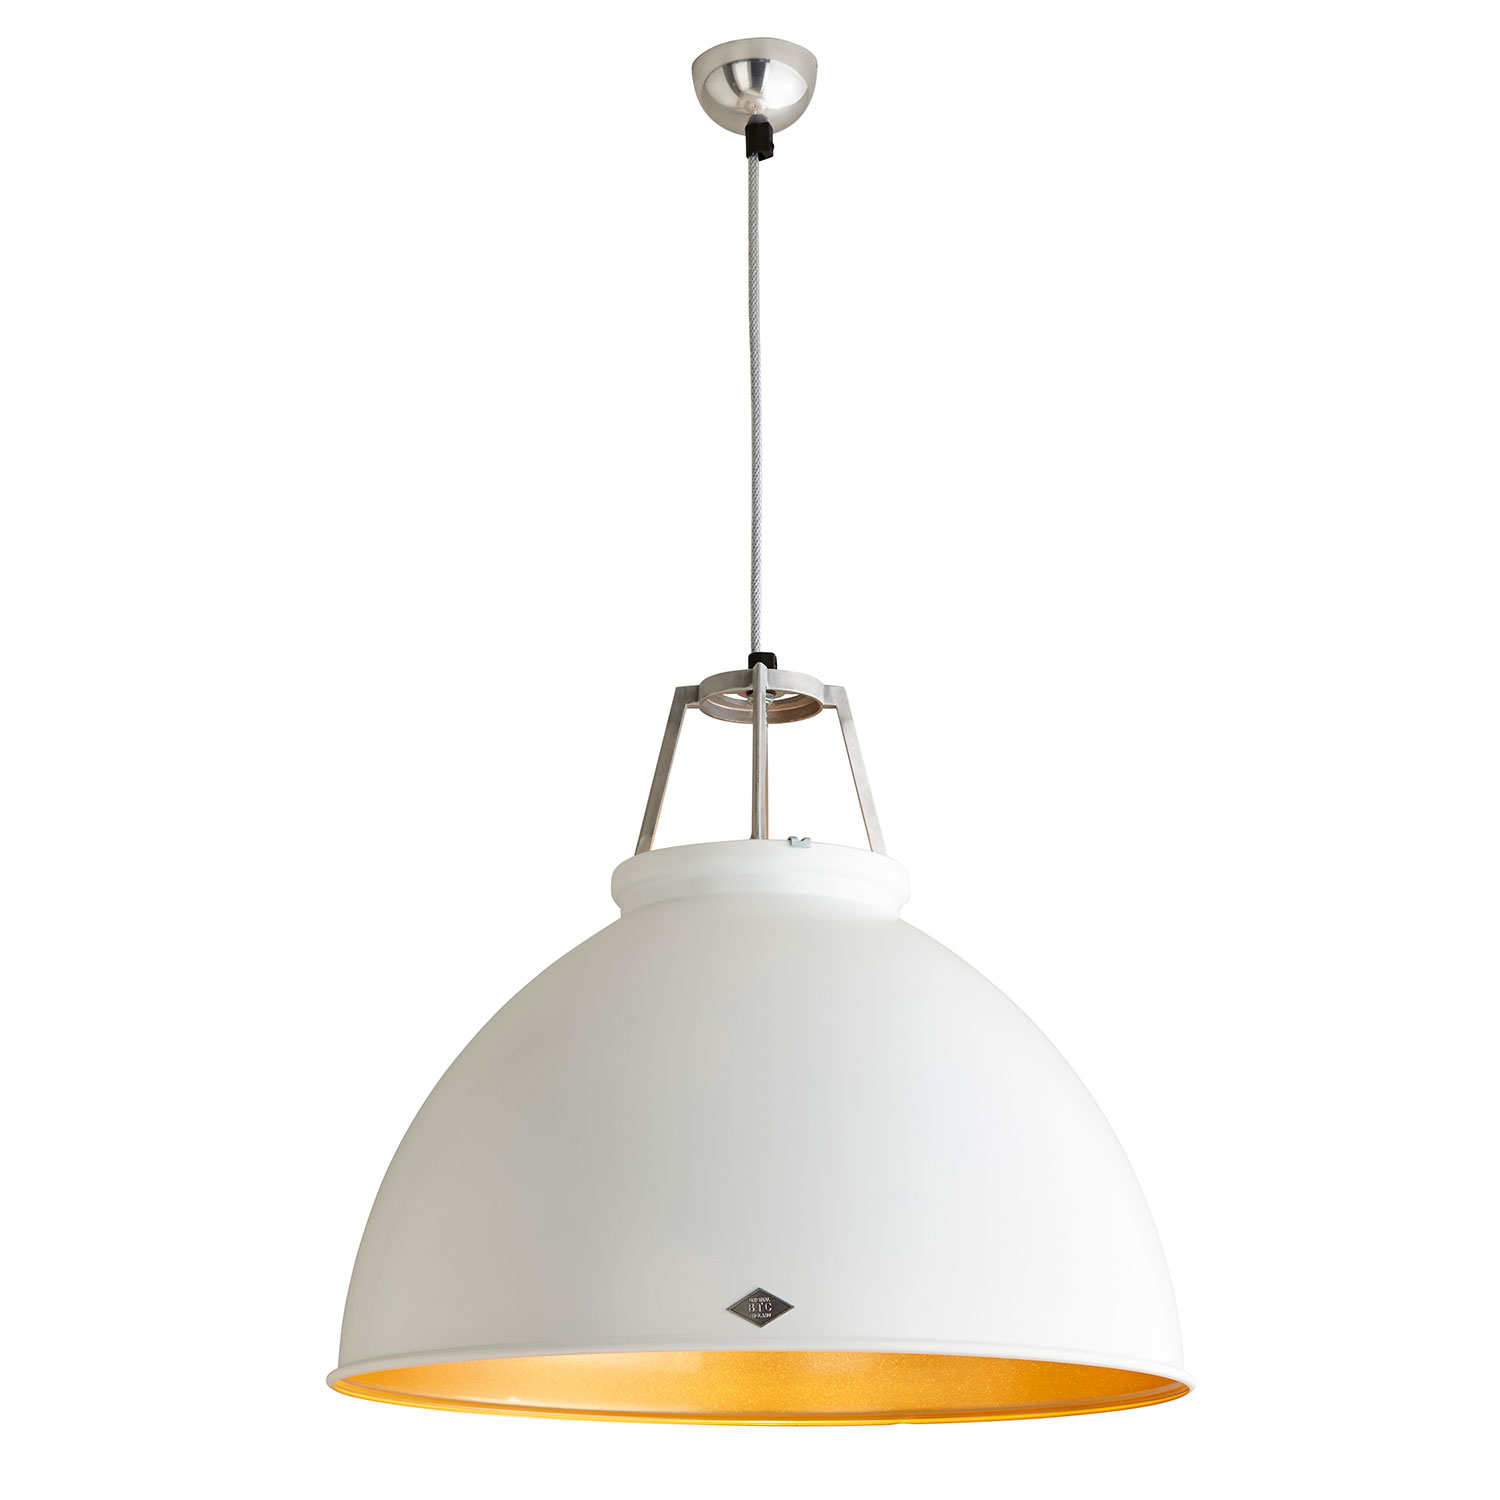 Titan Size 5 Pendant Light, White with Gold Interior